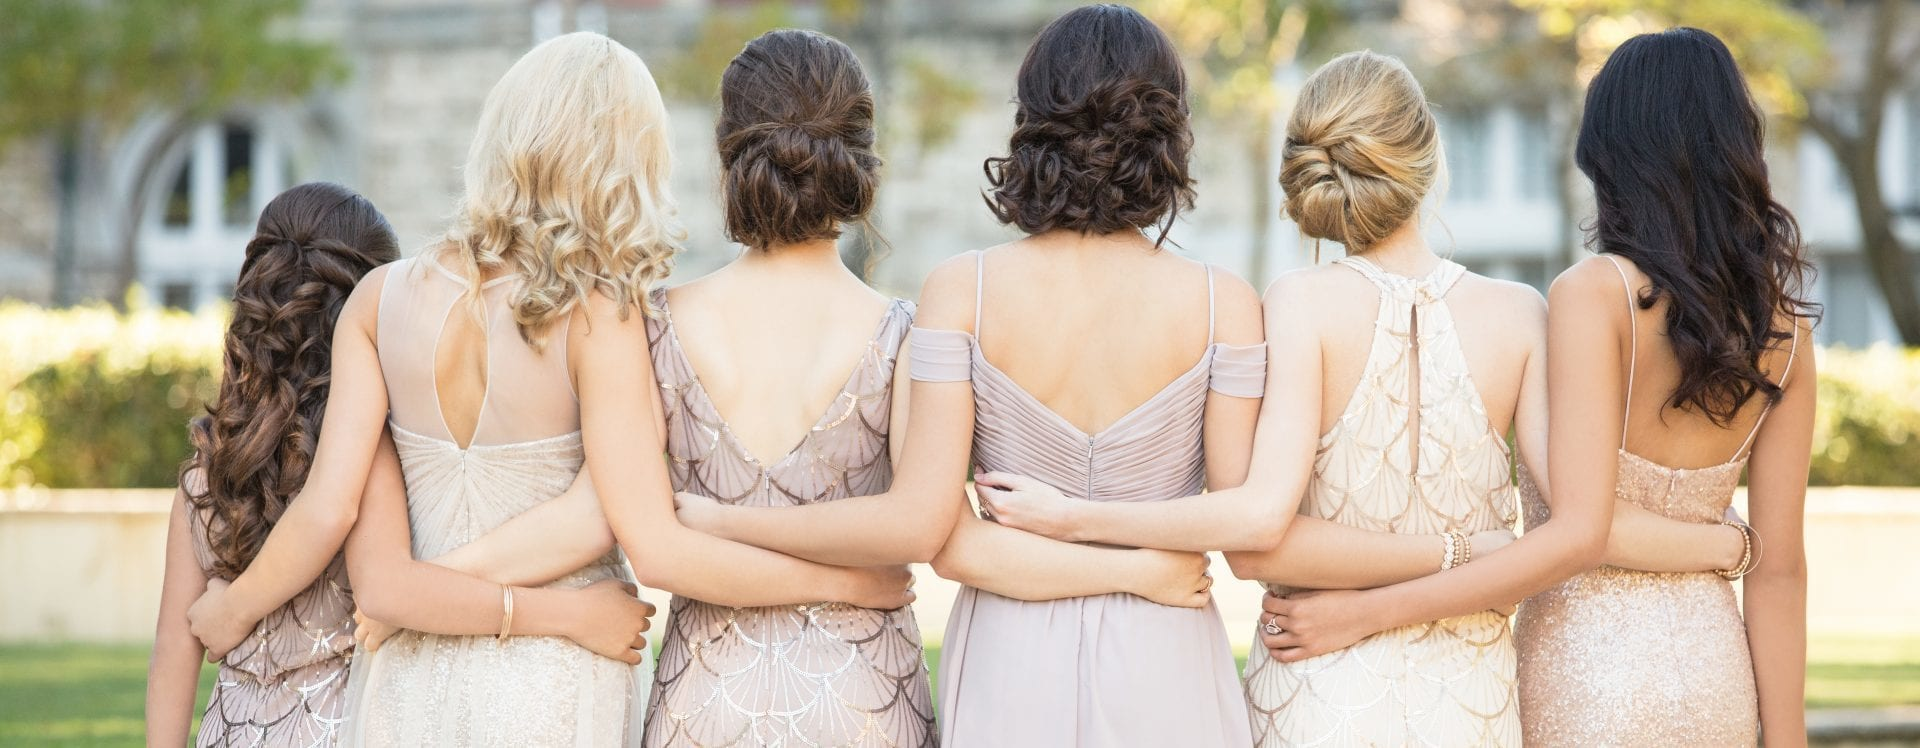 bridesmaidspic